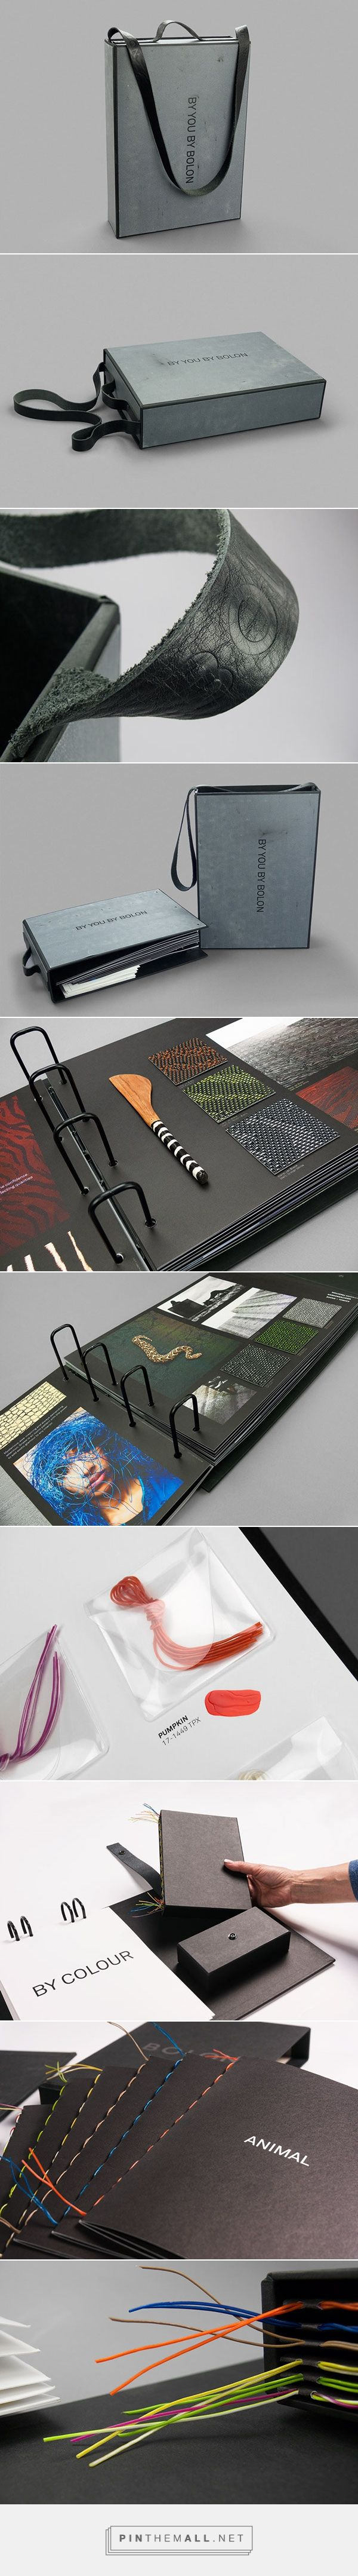 By You By Bolon swatch and sample book | Packaging on Behance